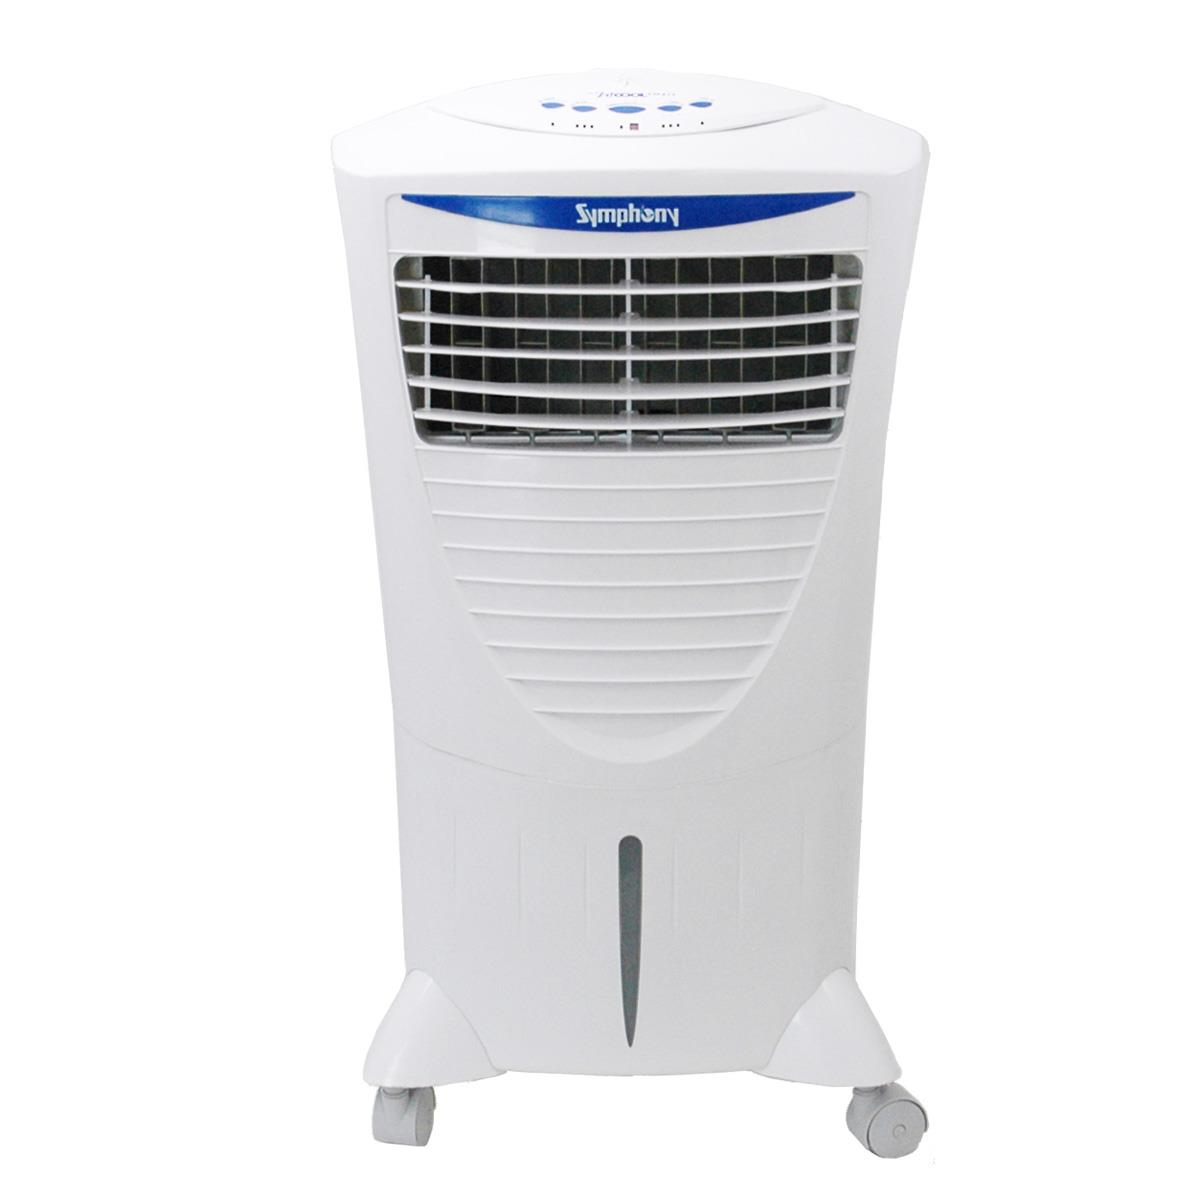 Symphony Hi Cool I Smart Air Cooler Price In Bangladesh